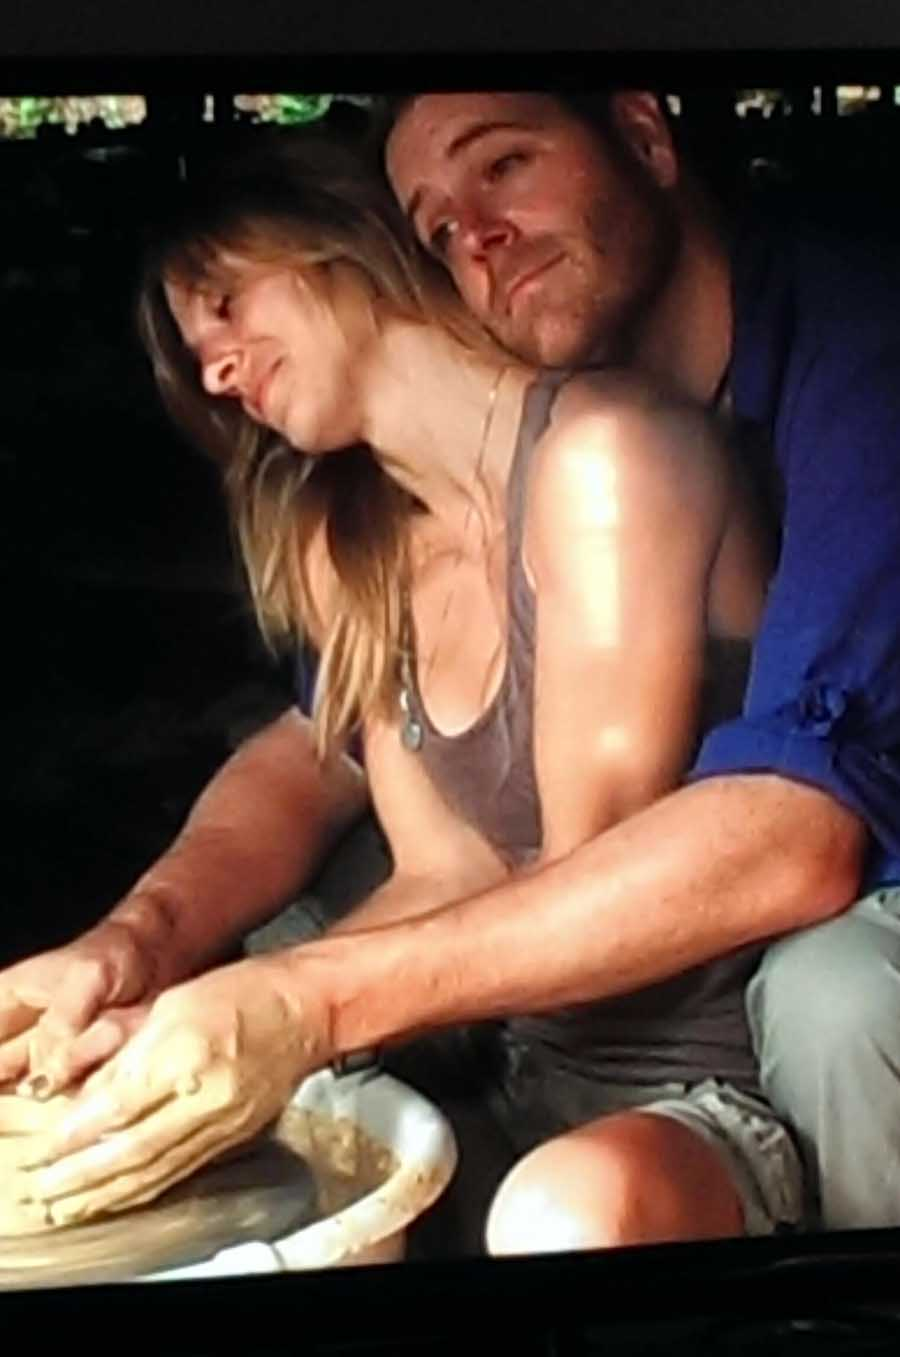 Rumored Photo of Josh Gates and Erin Ryder.